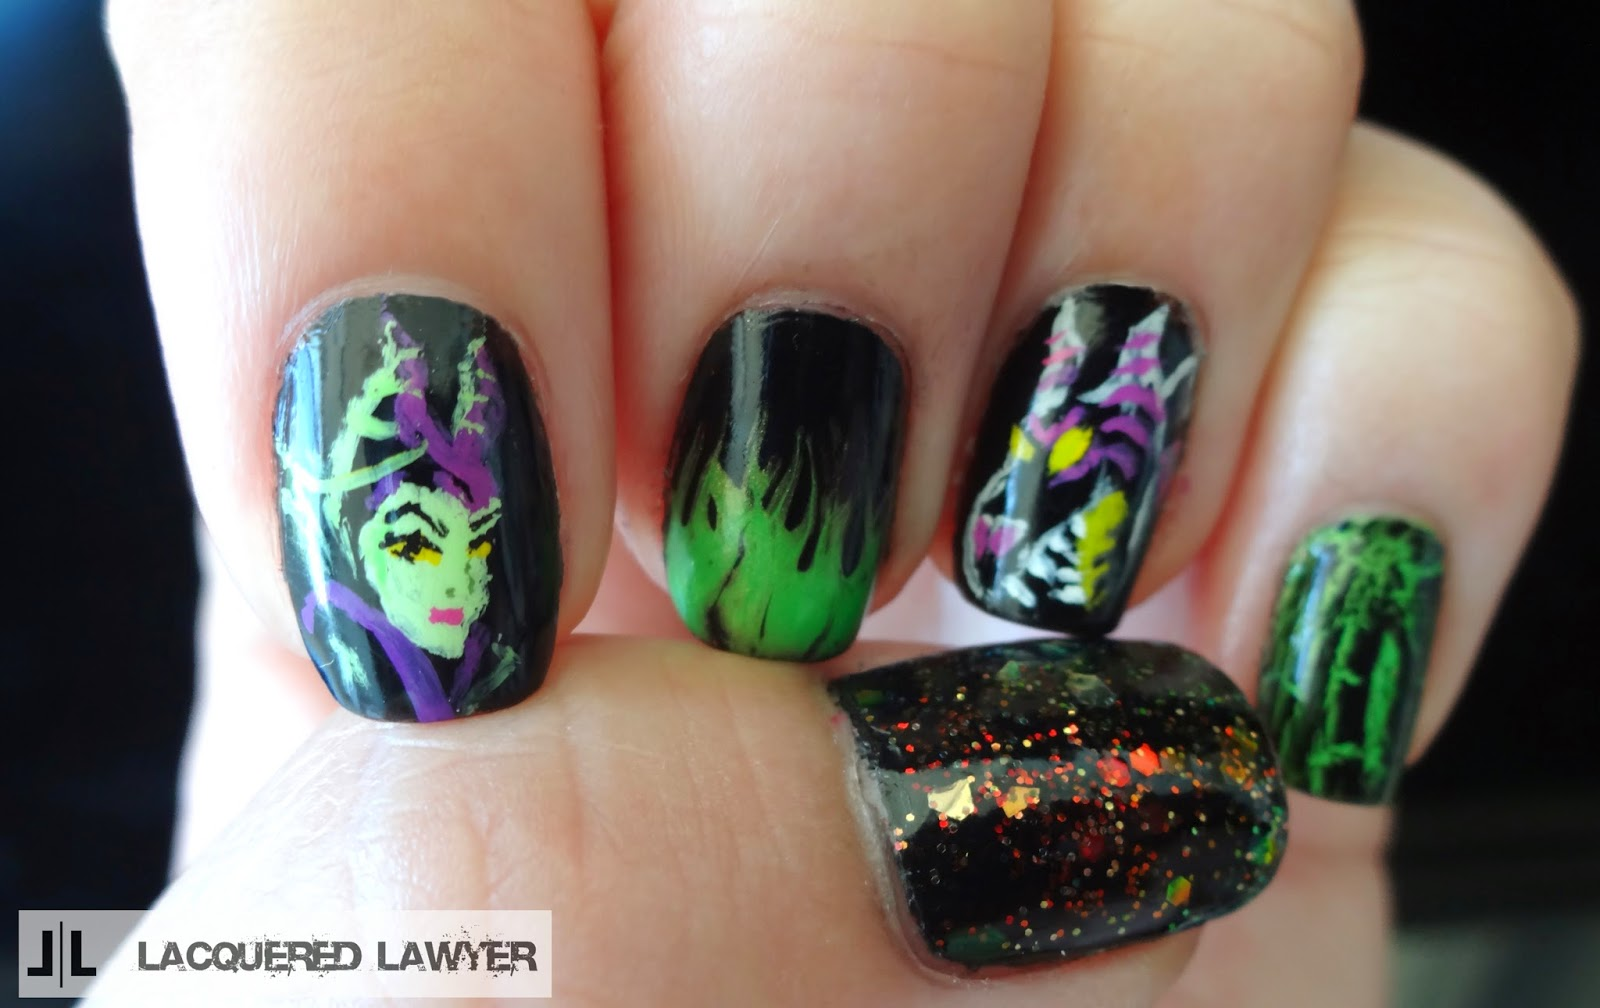 Lacquered Lawyer | Nail Art Blog: Maleficent Nail Art